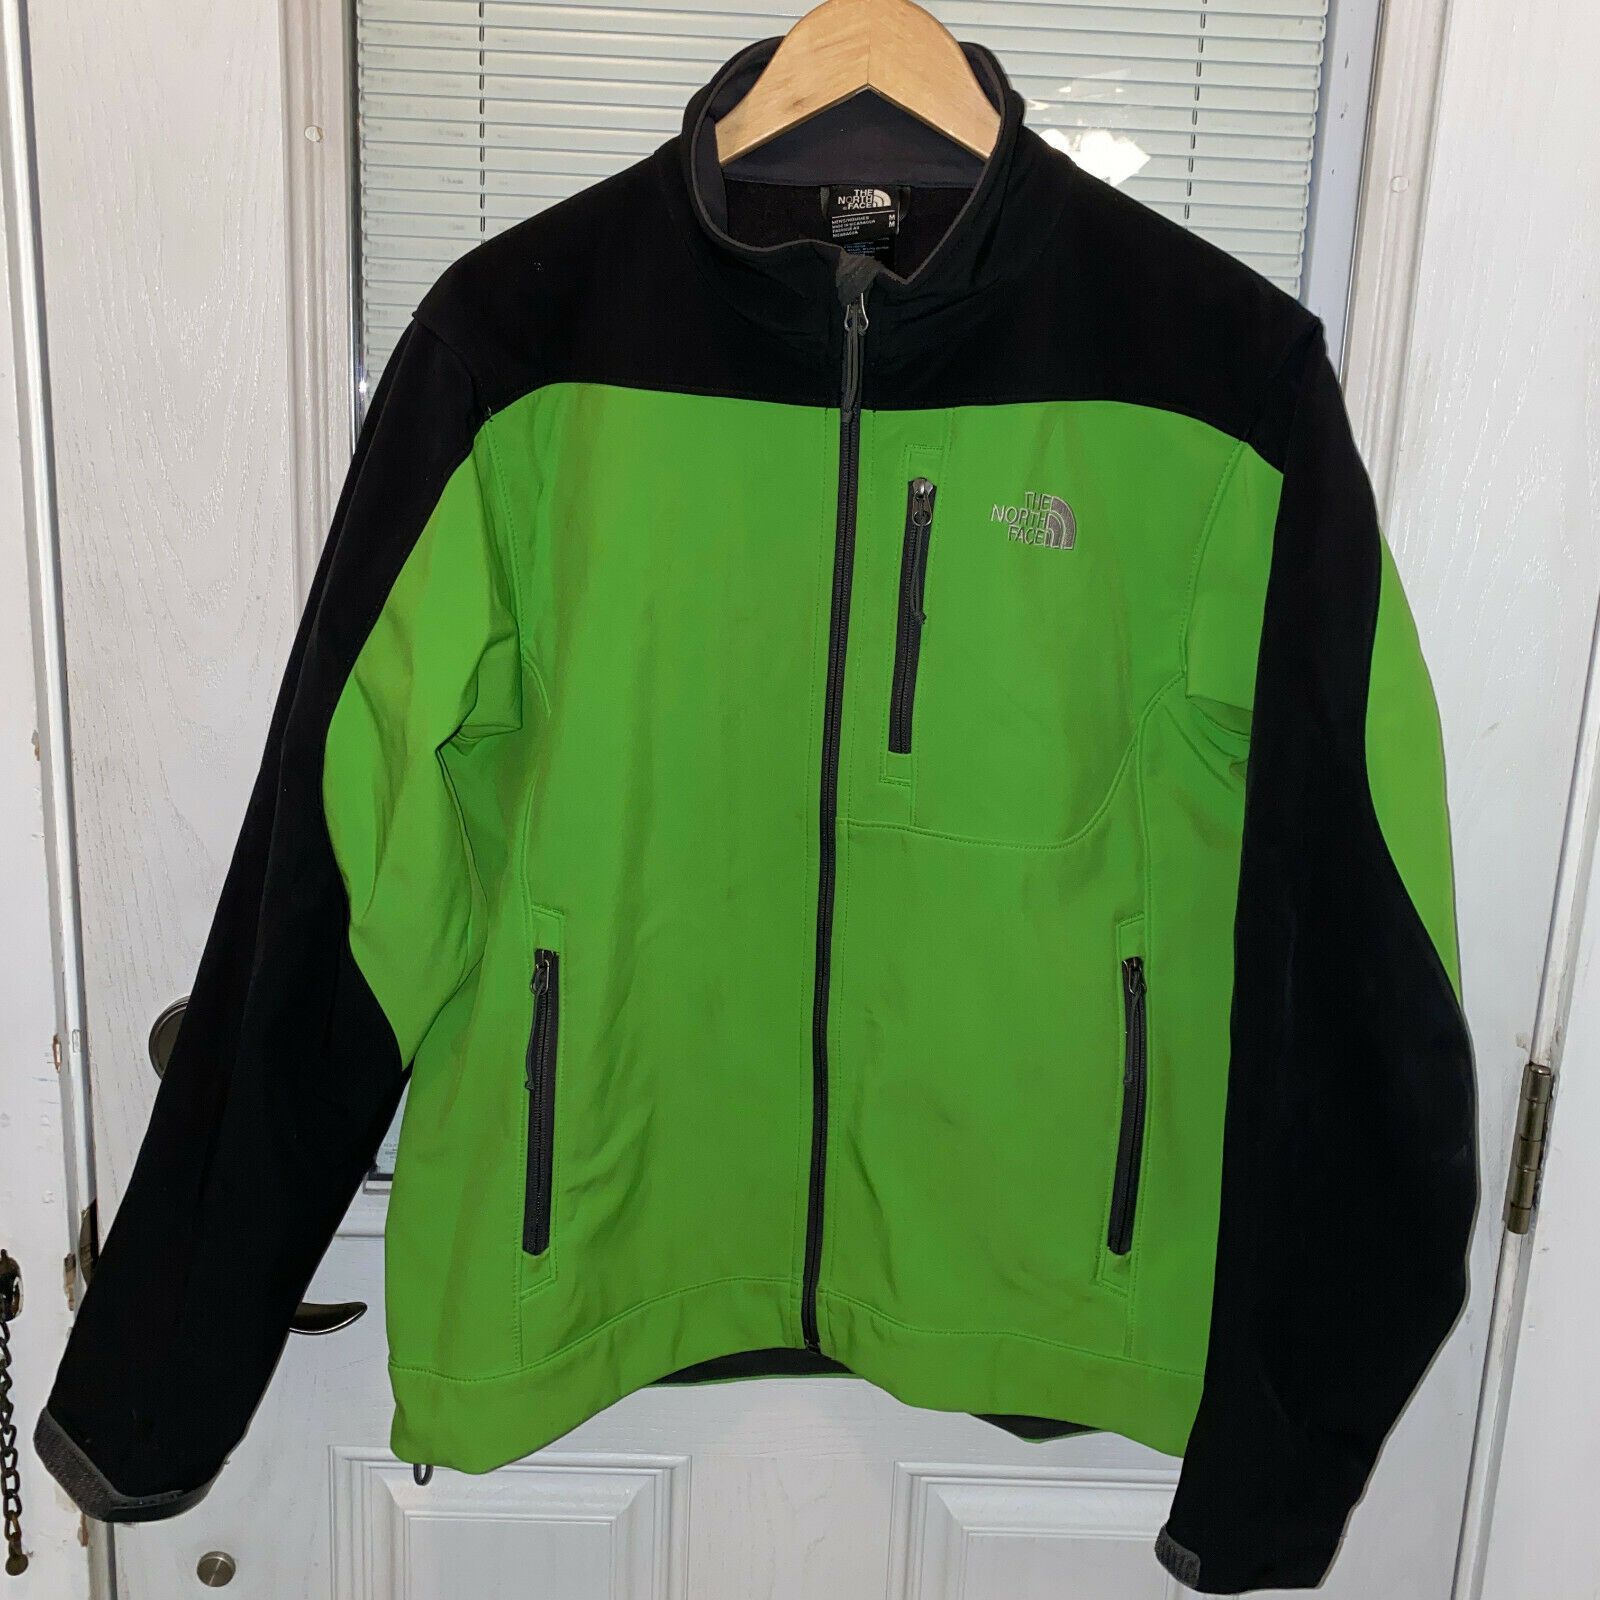 Primary image for North Face Apex Bionic Jacket Mens Medium Green Black T183